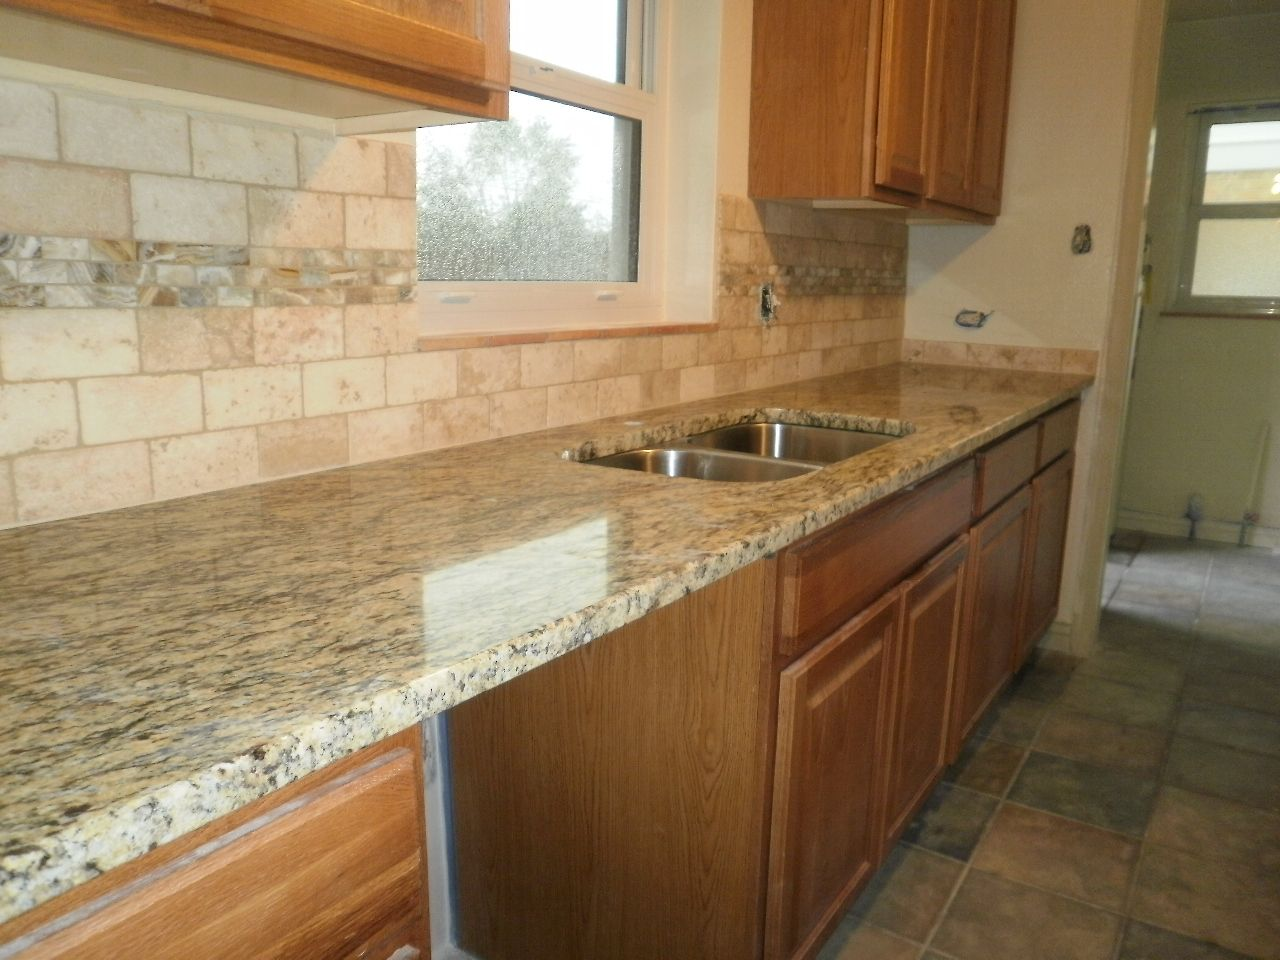 Santa Cecilia Granite Kitchen What Type Of Backsplash To Use With St Cecilia Countertop Santa